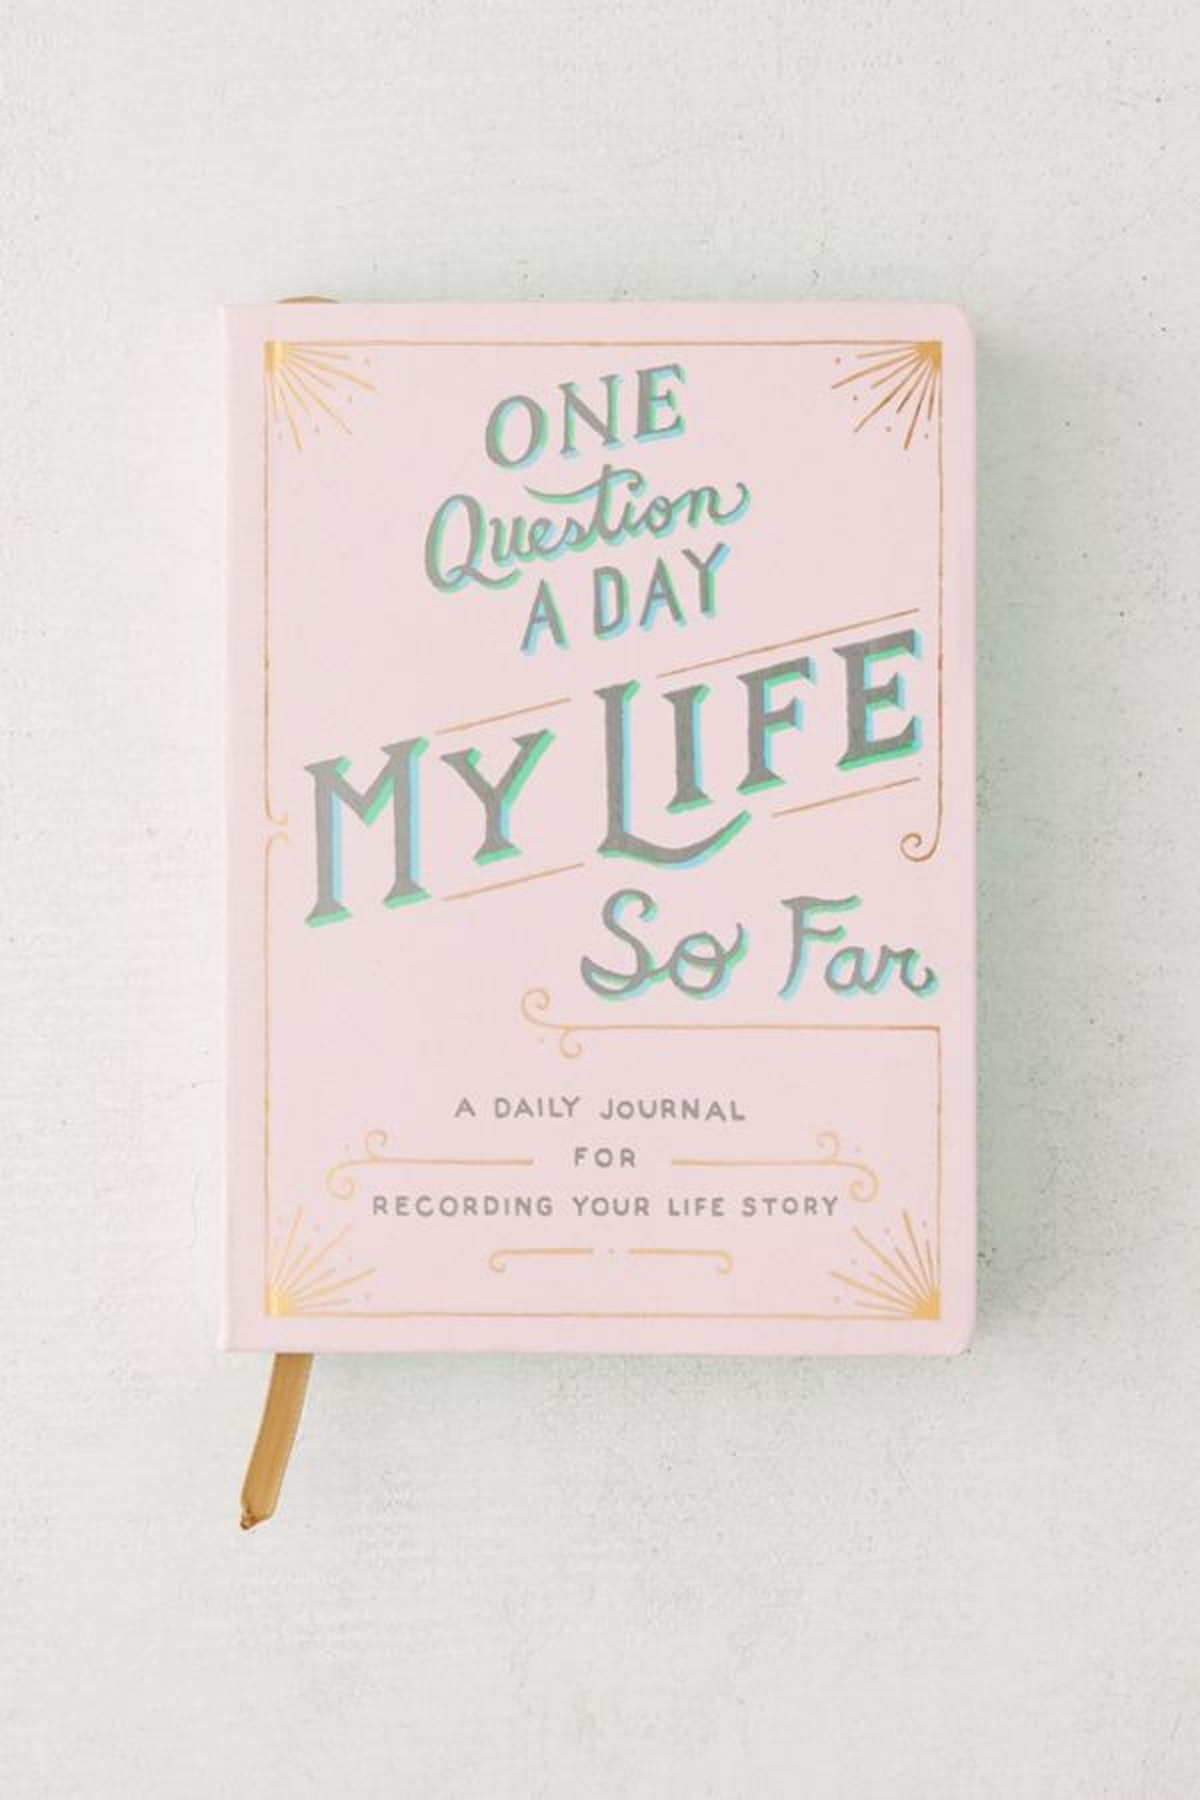 One Question a Day: My Life So Far: A Daily Journal for Recording Your Life Story By Aimee Chase